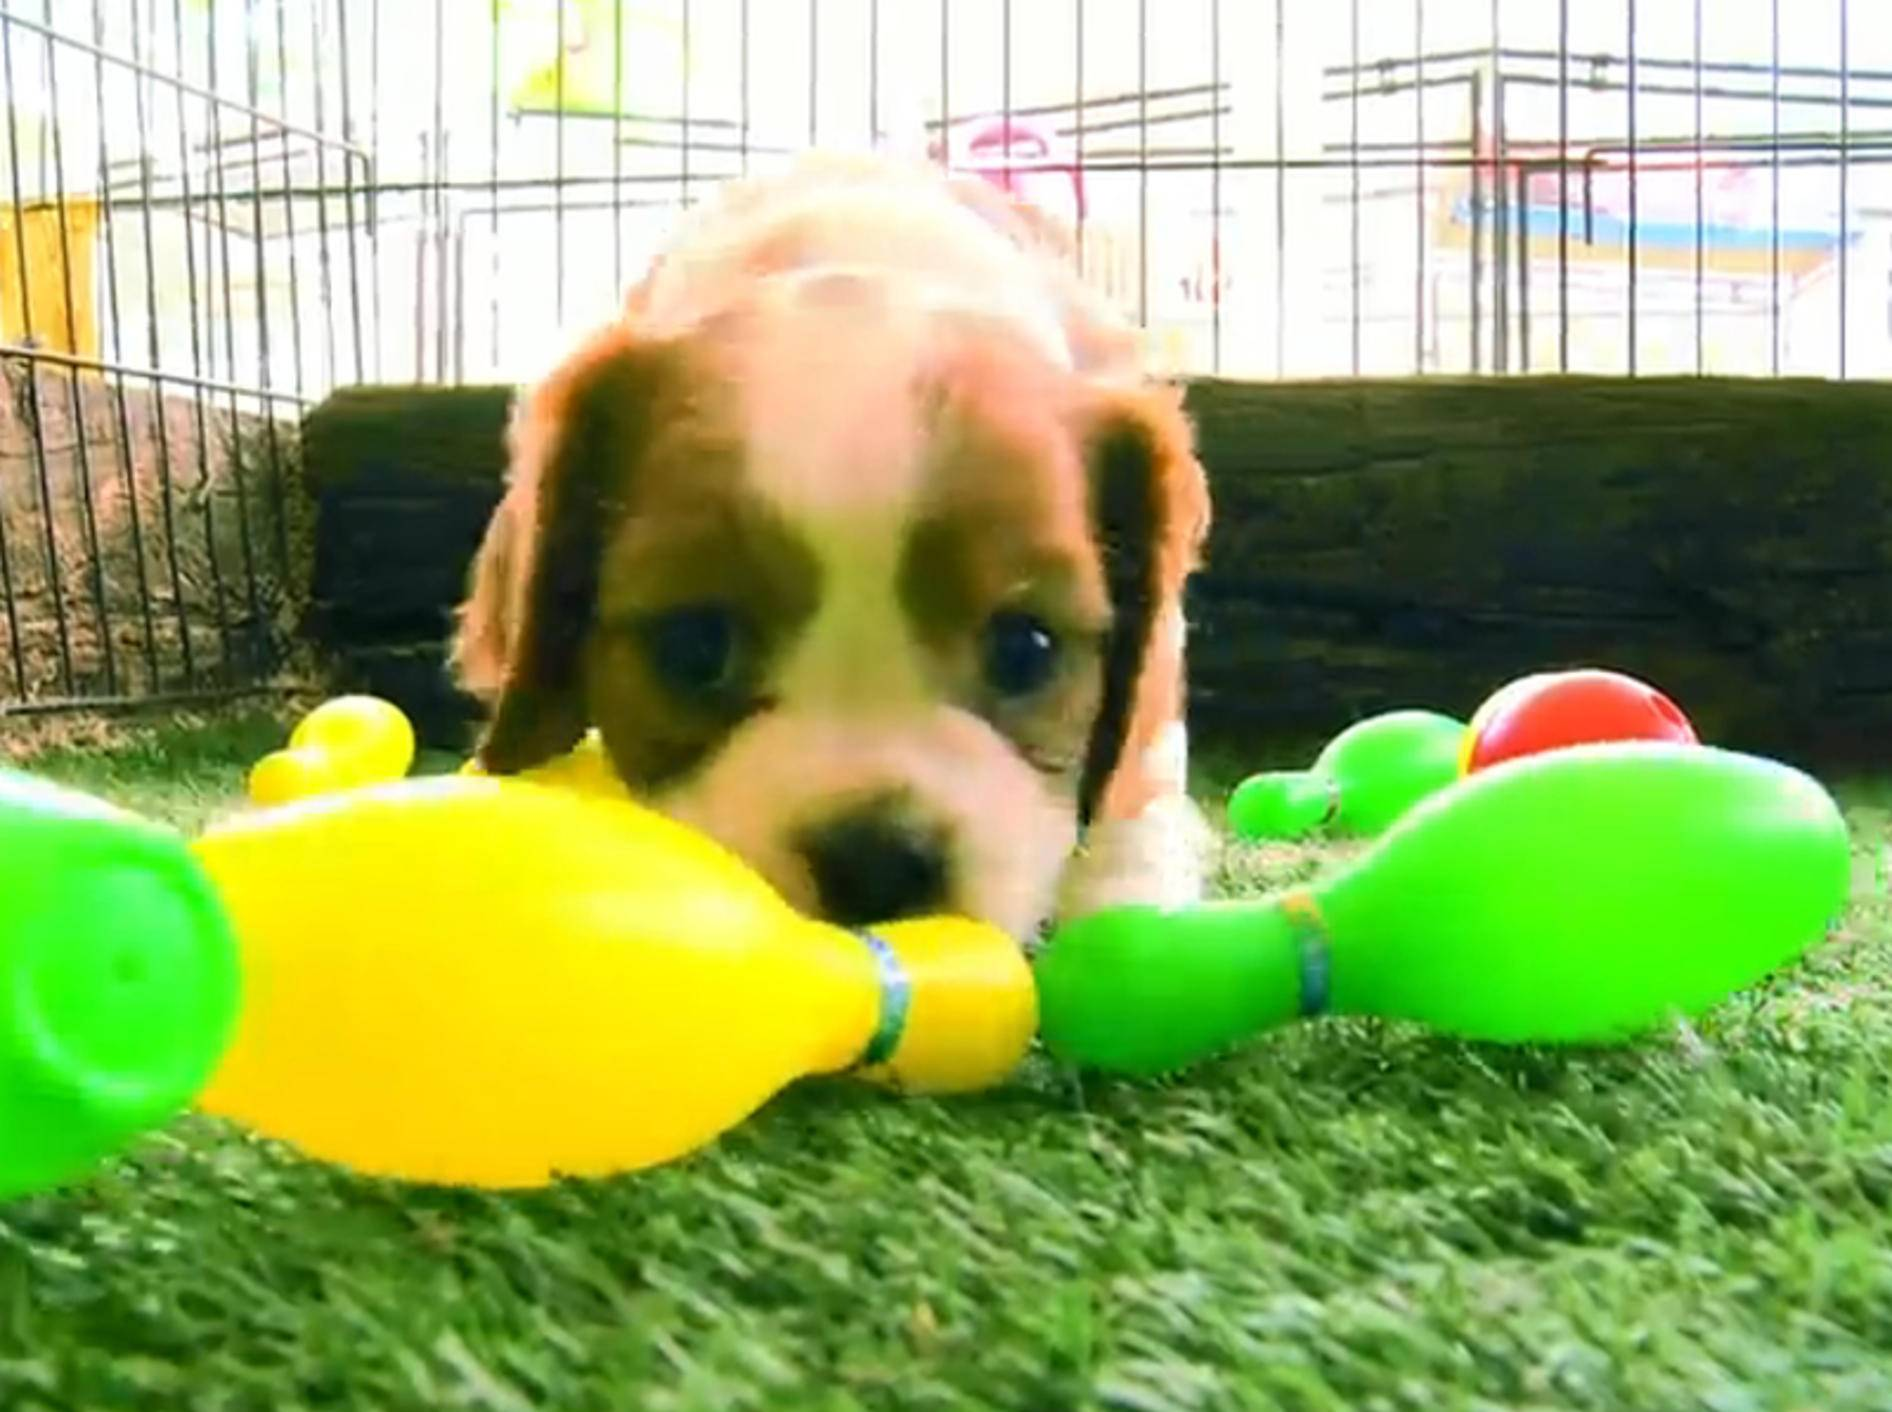 Hundewelpen spielen mit Plastikkegeln – Bild: YouTube / The Pet Collective